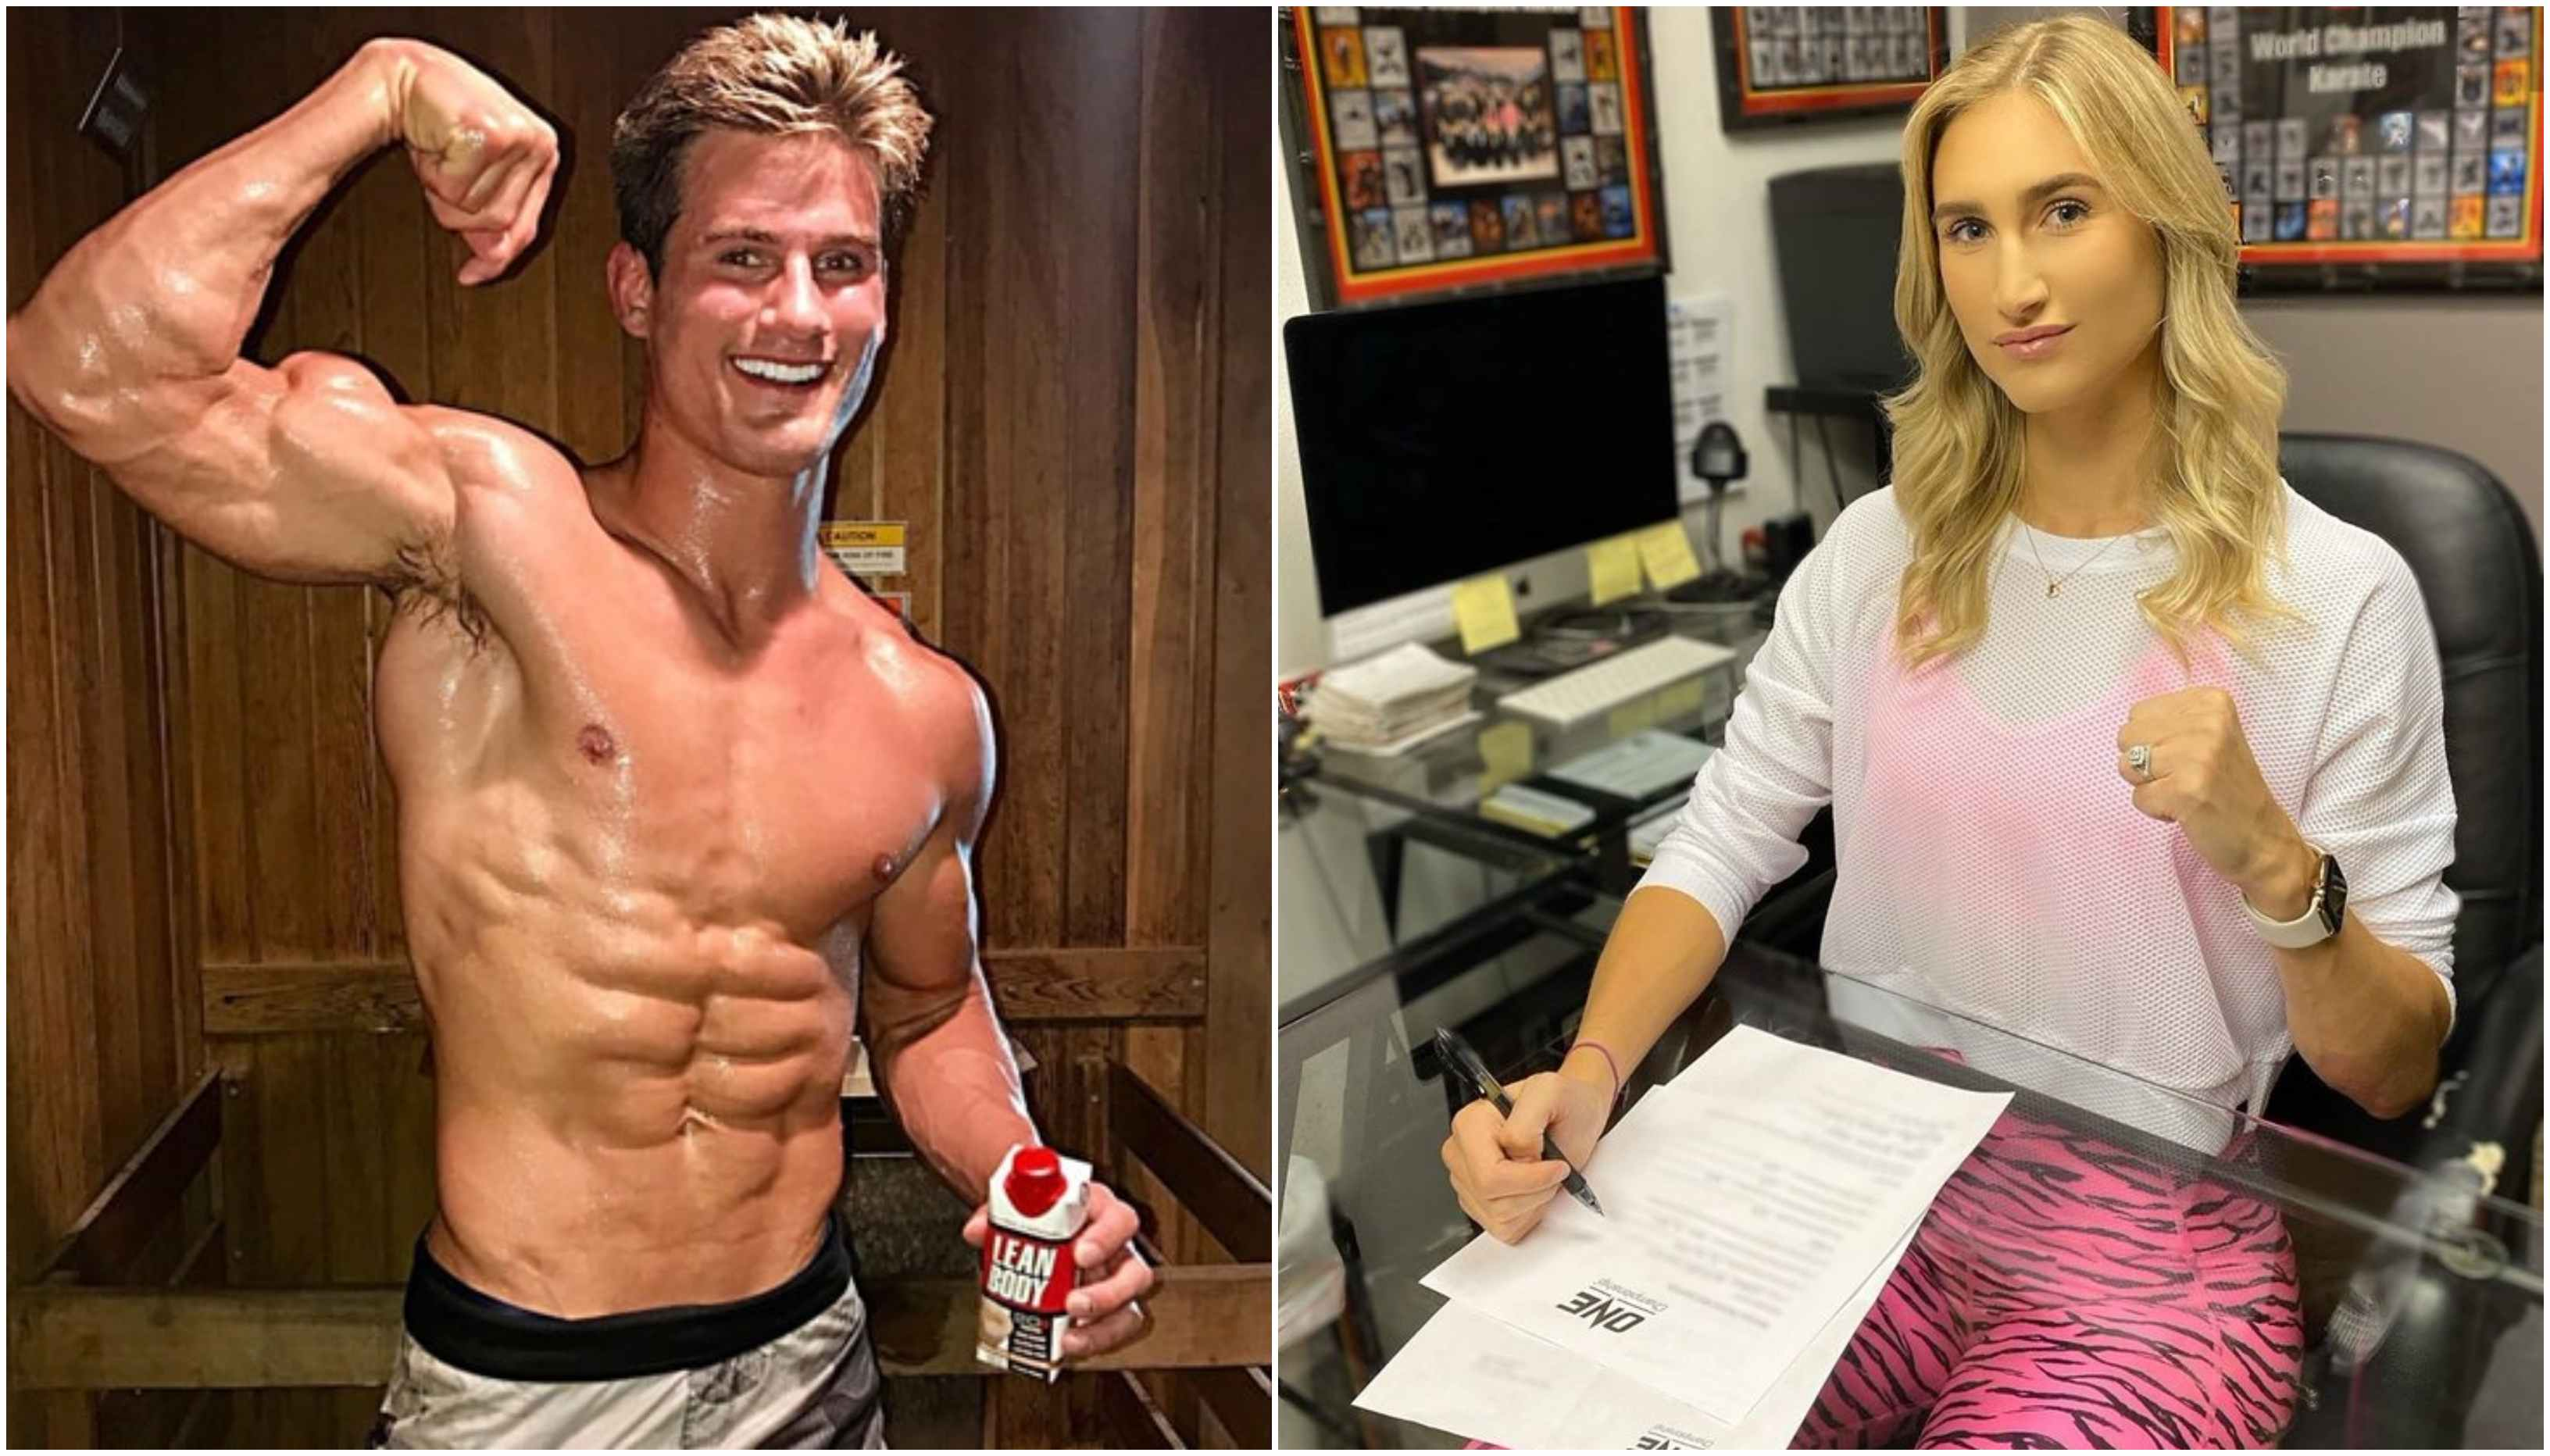 Sage Northcutt's sister Colbey Northcutt signs with ONE Championship - Northcutt